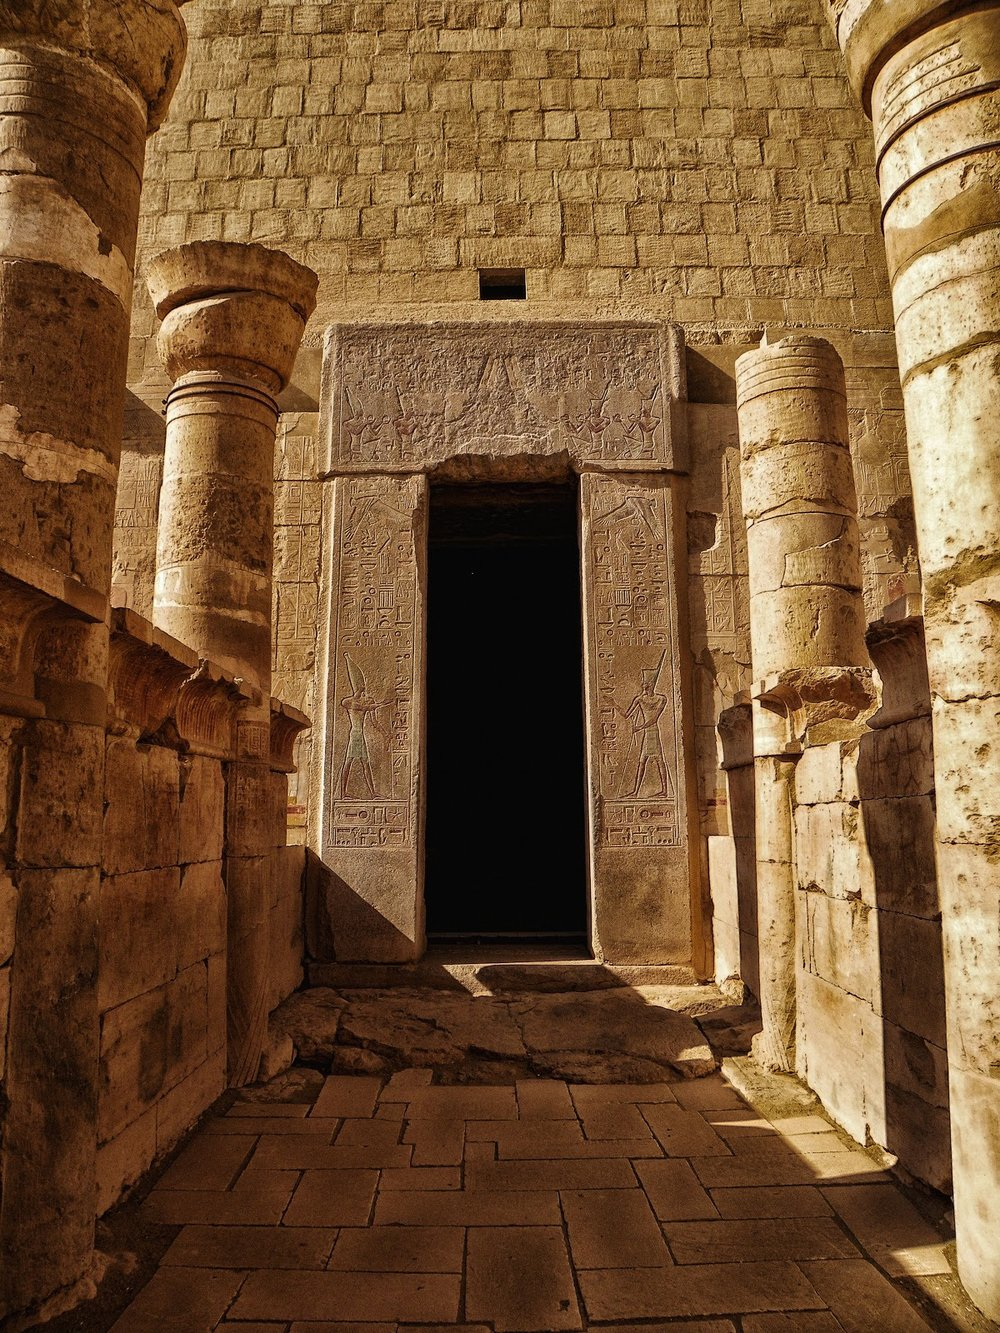 Doorway from Hatshepsut's Deir El-Bahri temple By Noor Sullivan